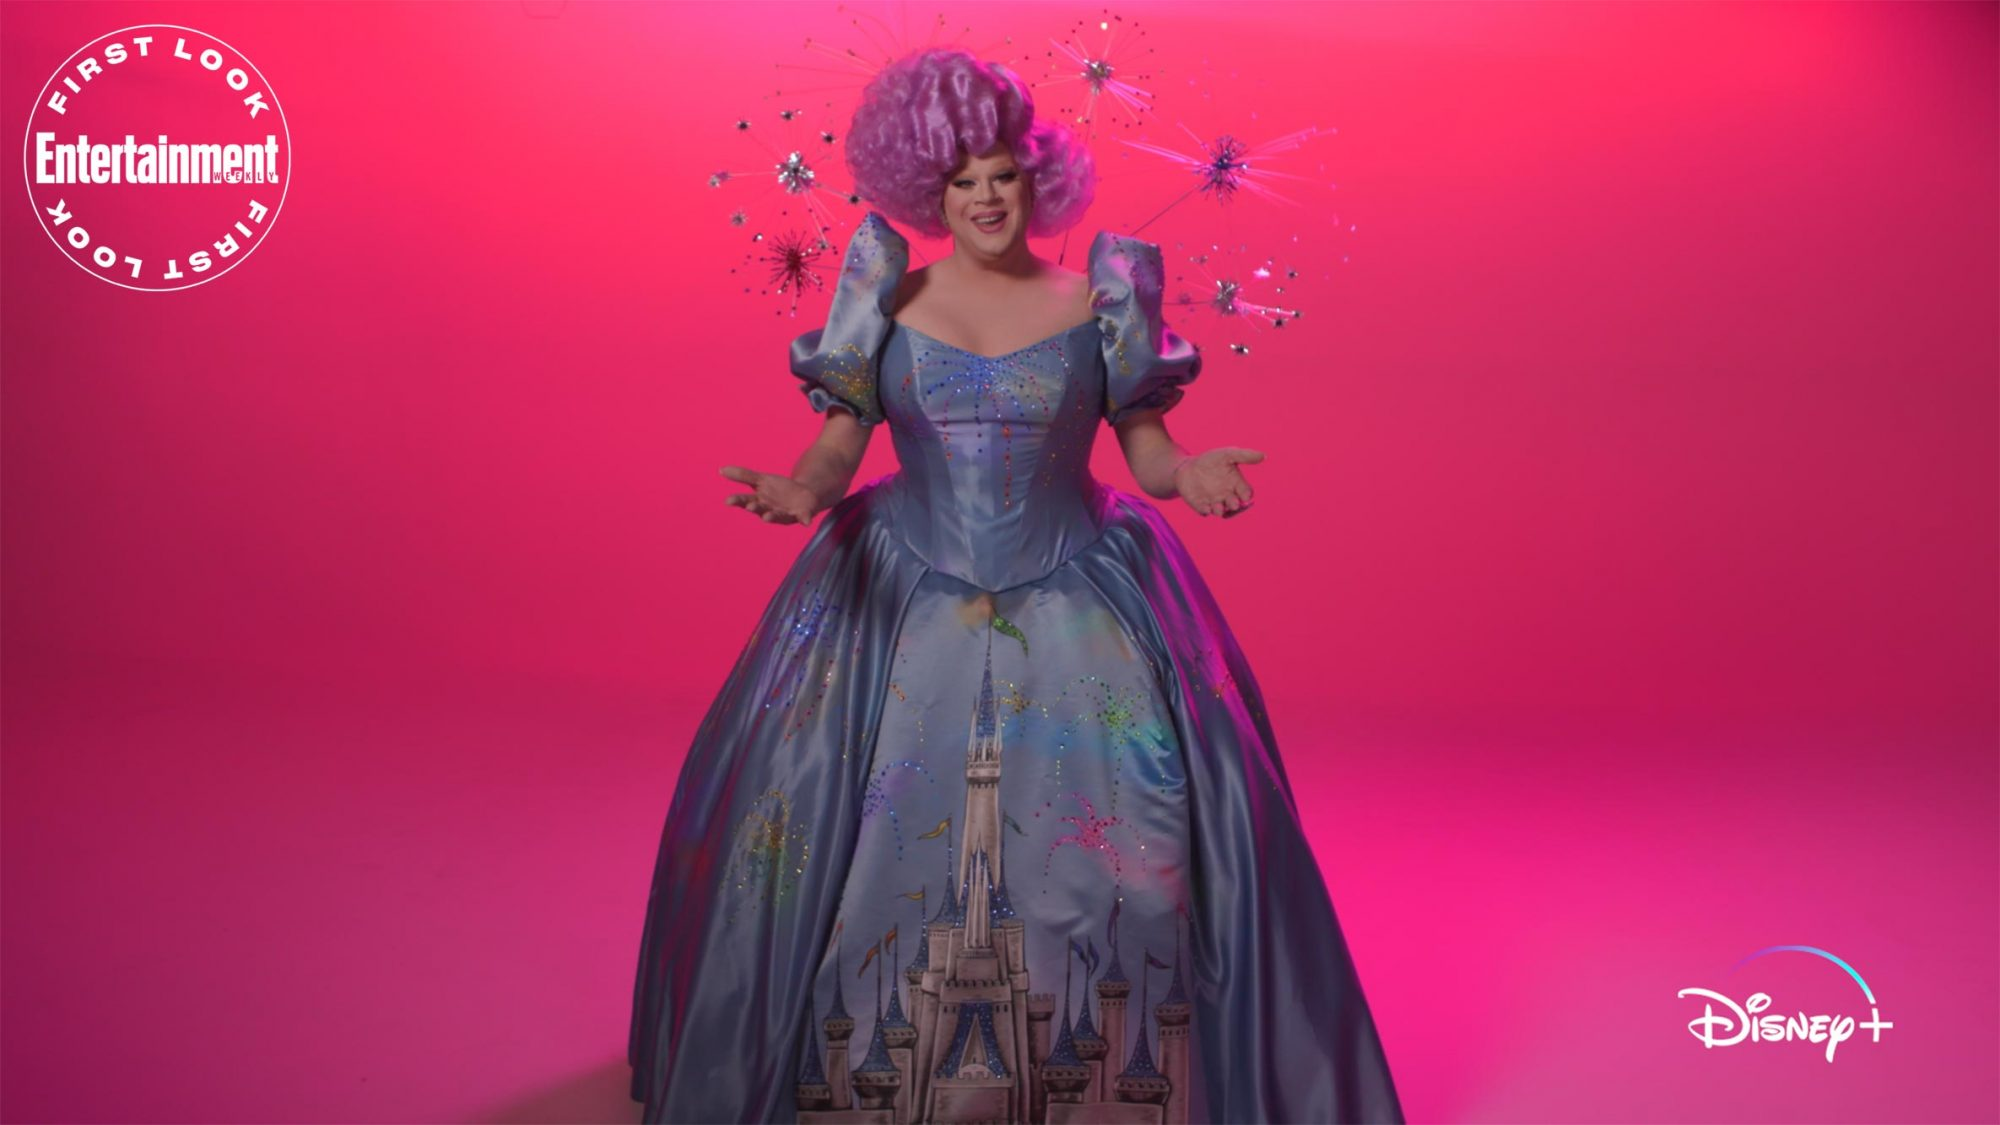 Nina West stars in the queer Disney+ special 'This is Me: Pride Celebration Spectacular.'